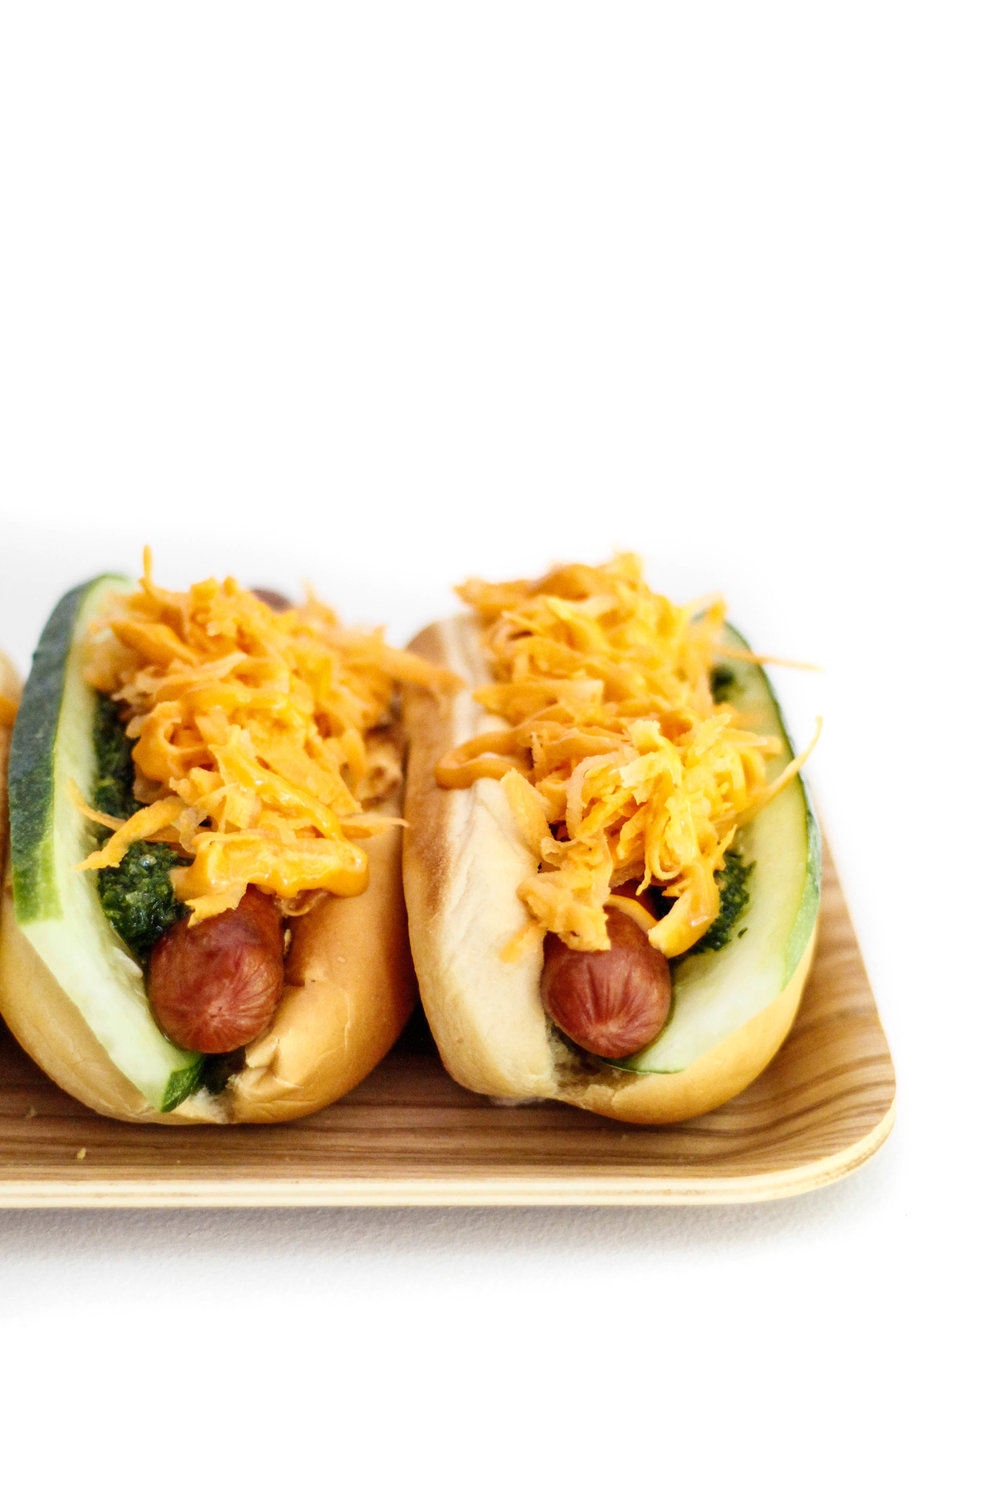 Banh mi-style hot dogs